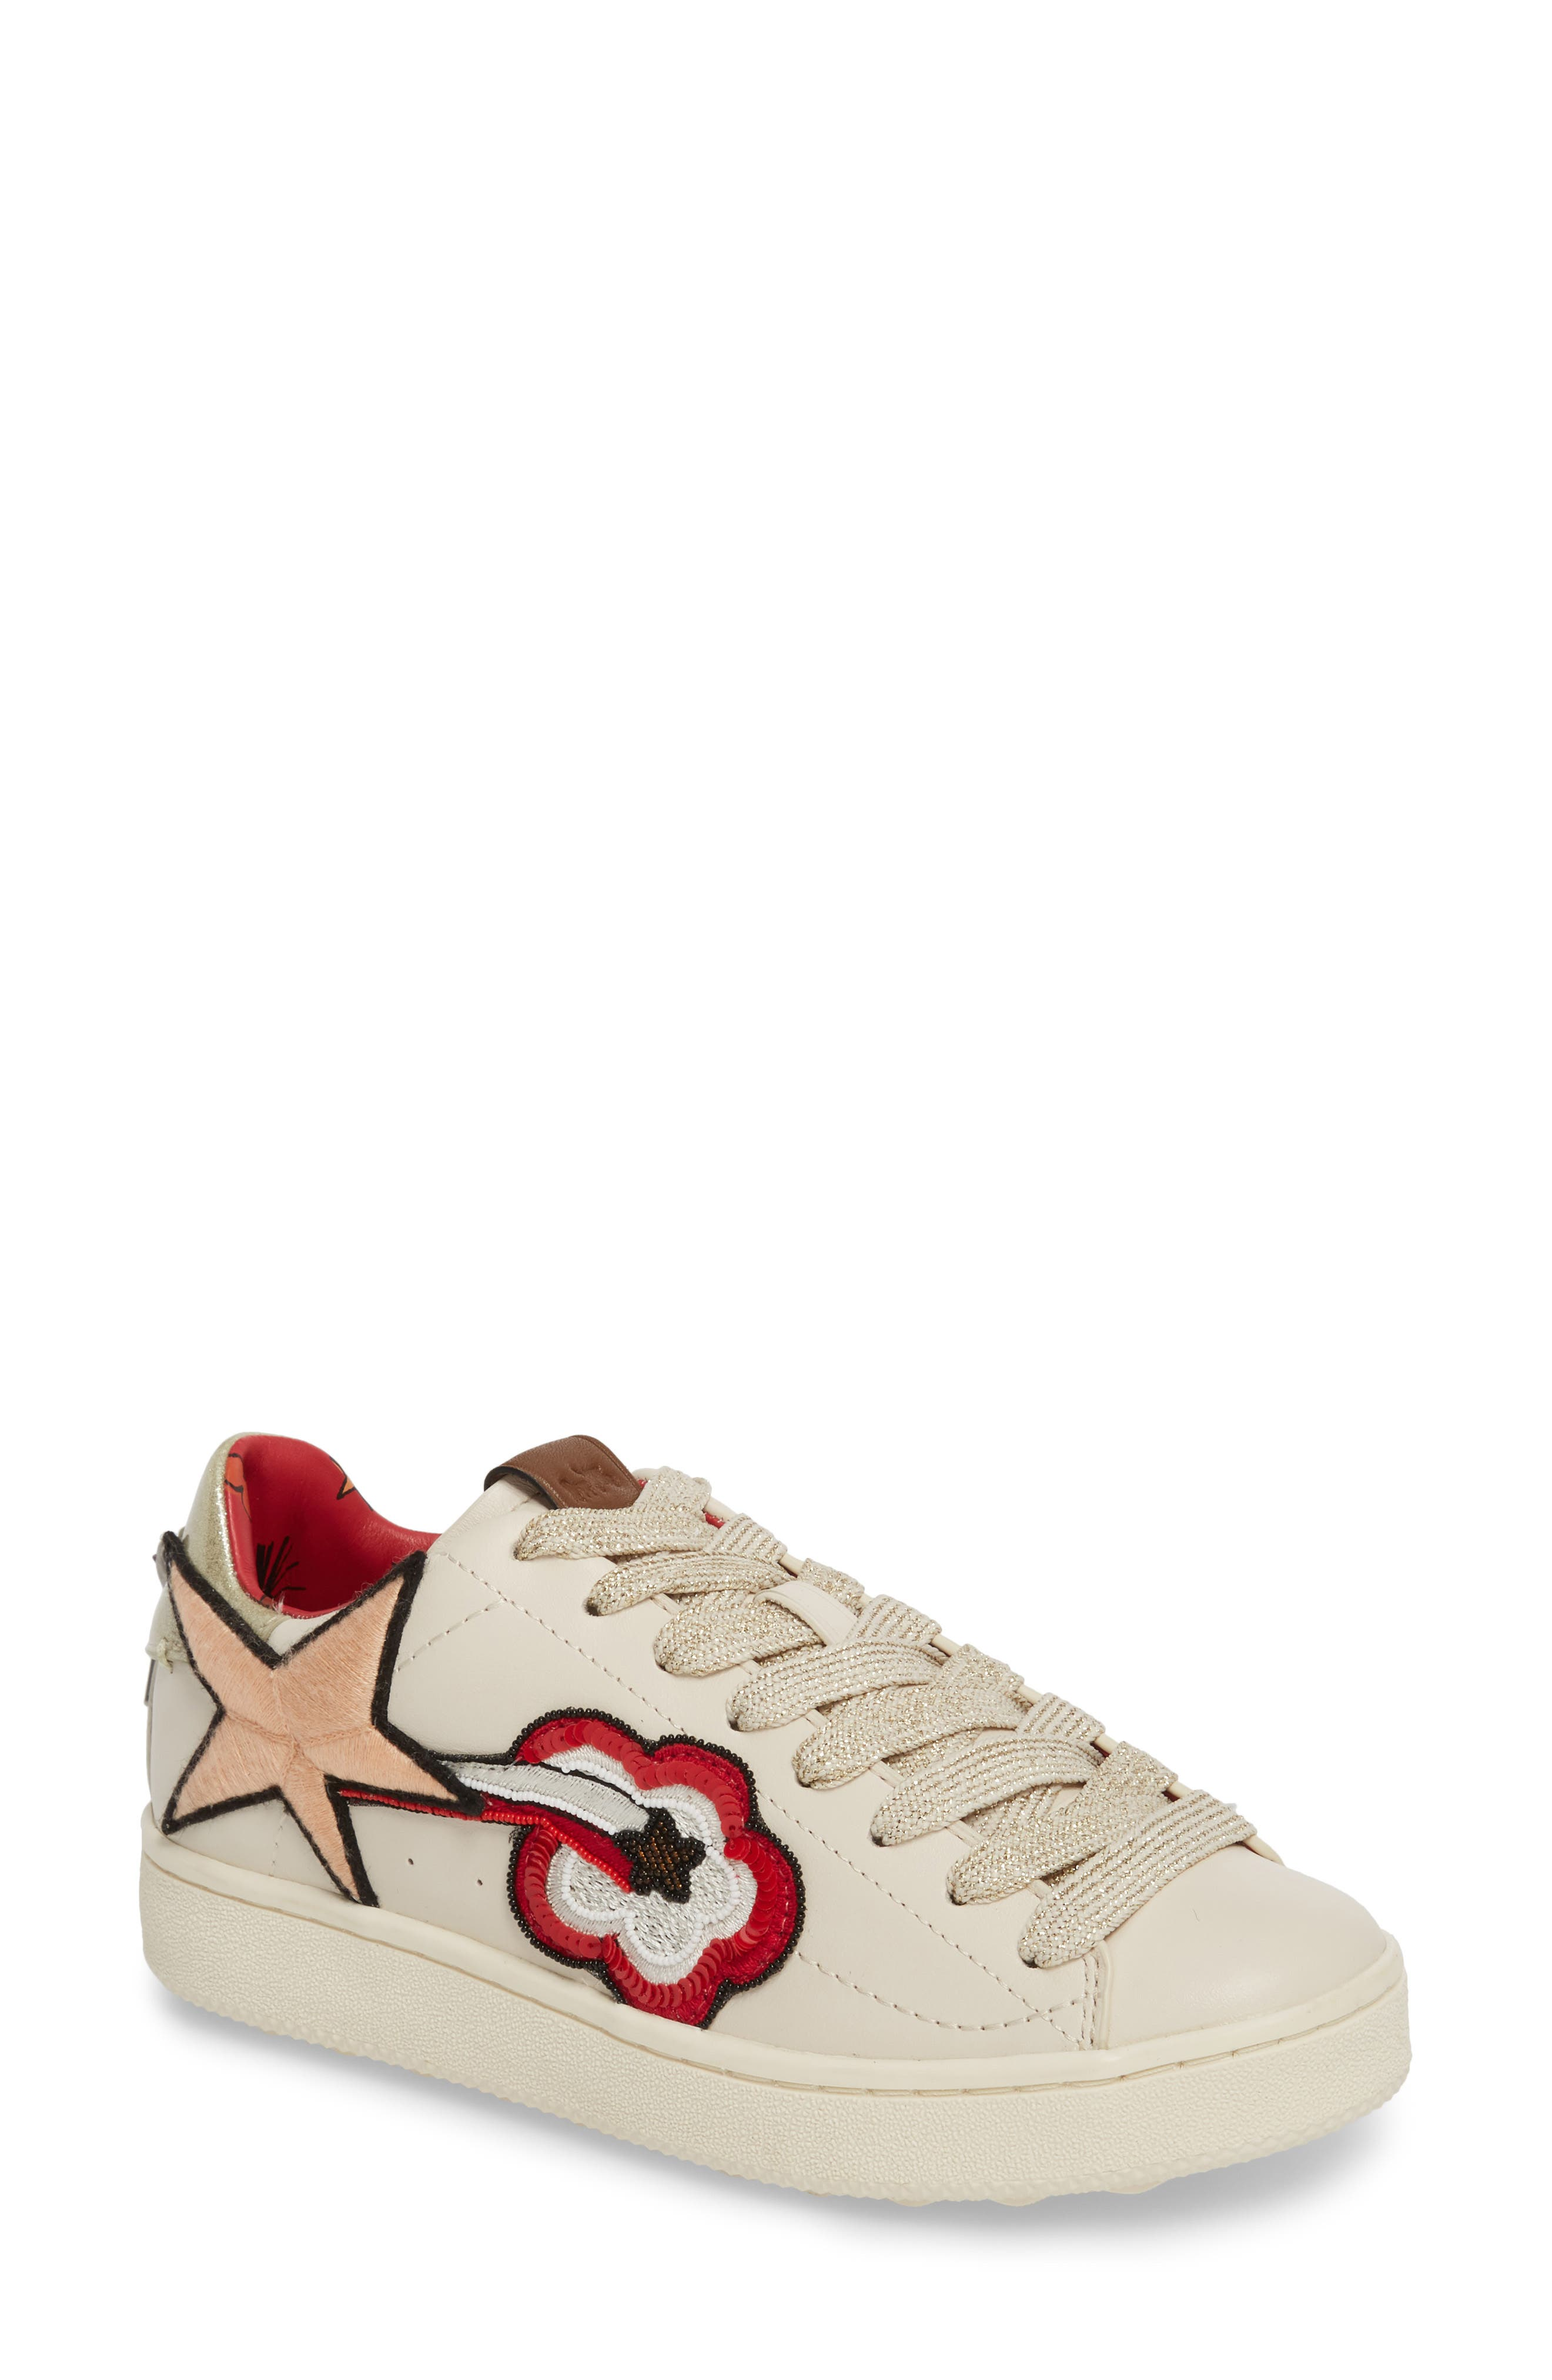 Shooting Star Sneaker,                             Main thumbnail 1, color,                             Chalk Leather